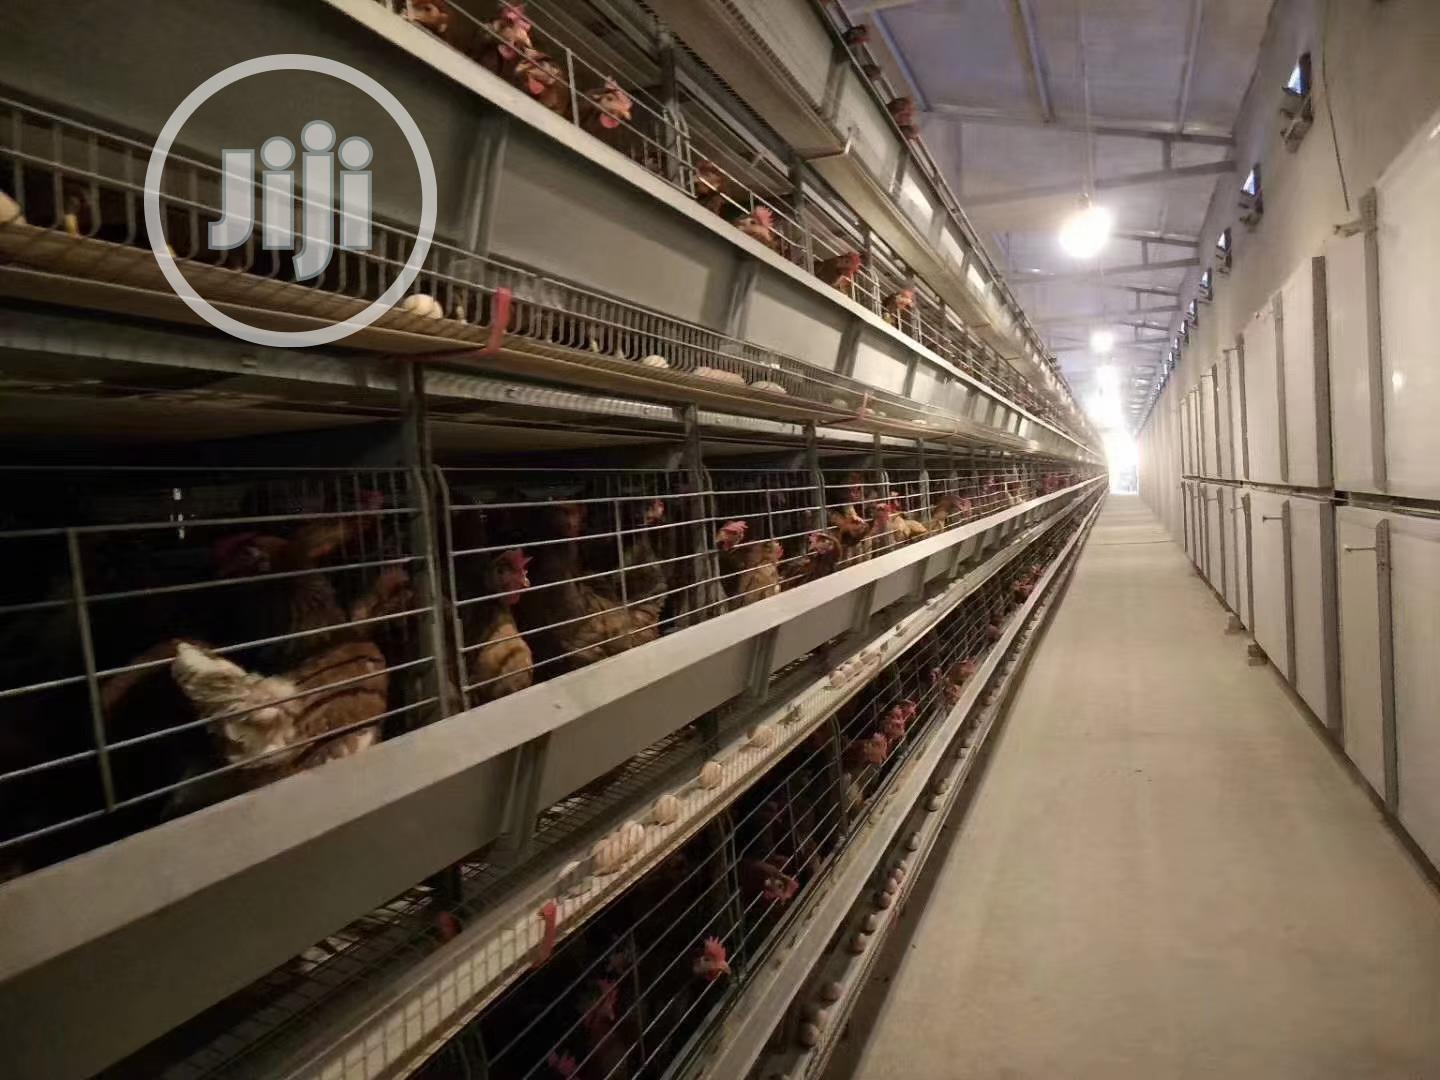 Poultry Cage / China Imported Poultry Cage | Farm Machinery & Equipment for sale in Gamawa, Bauchi State, Nigeria